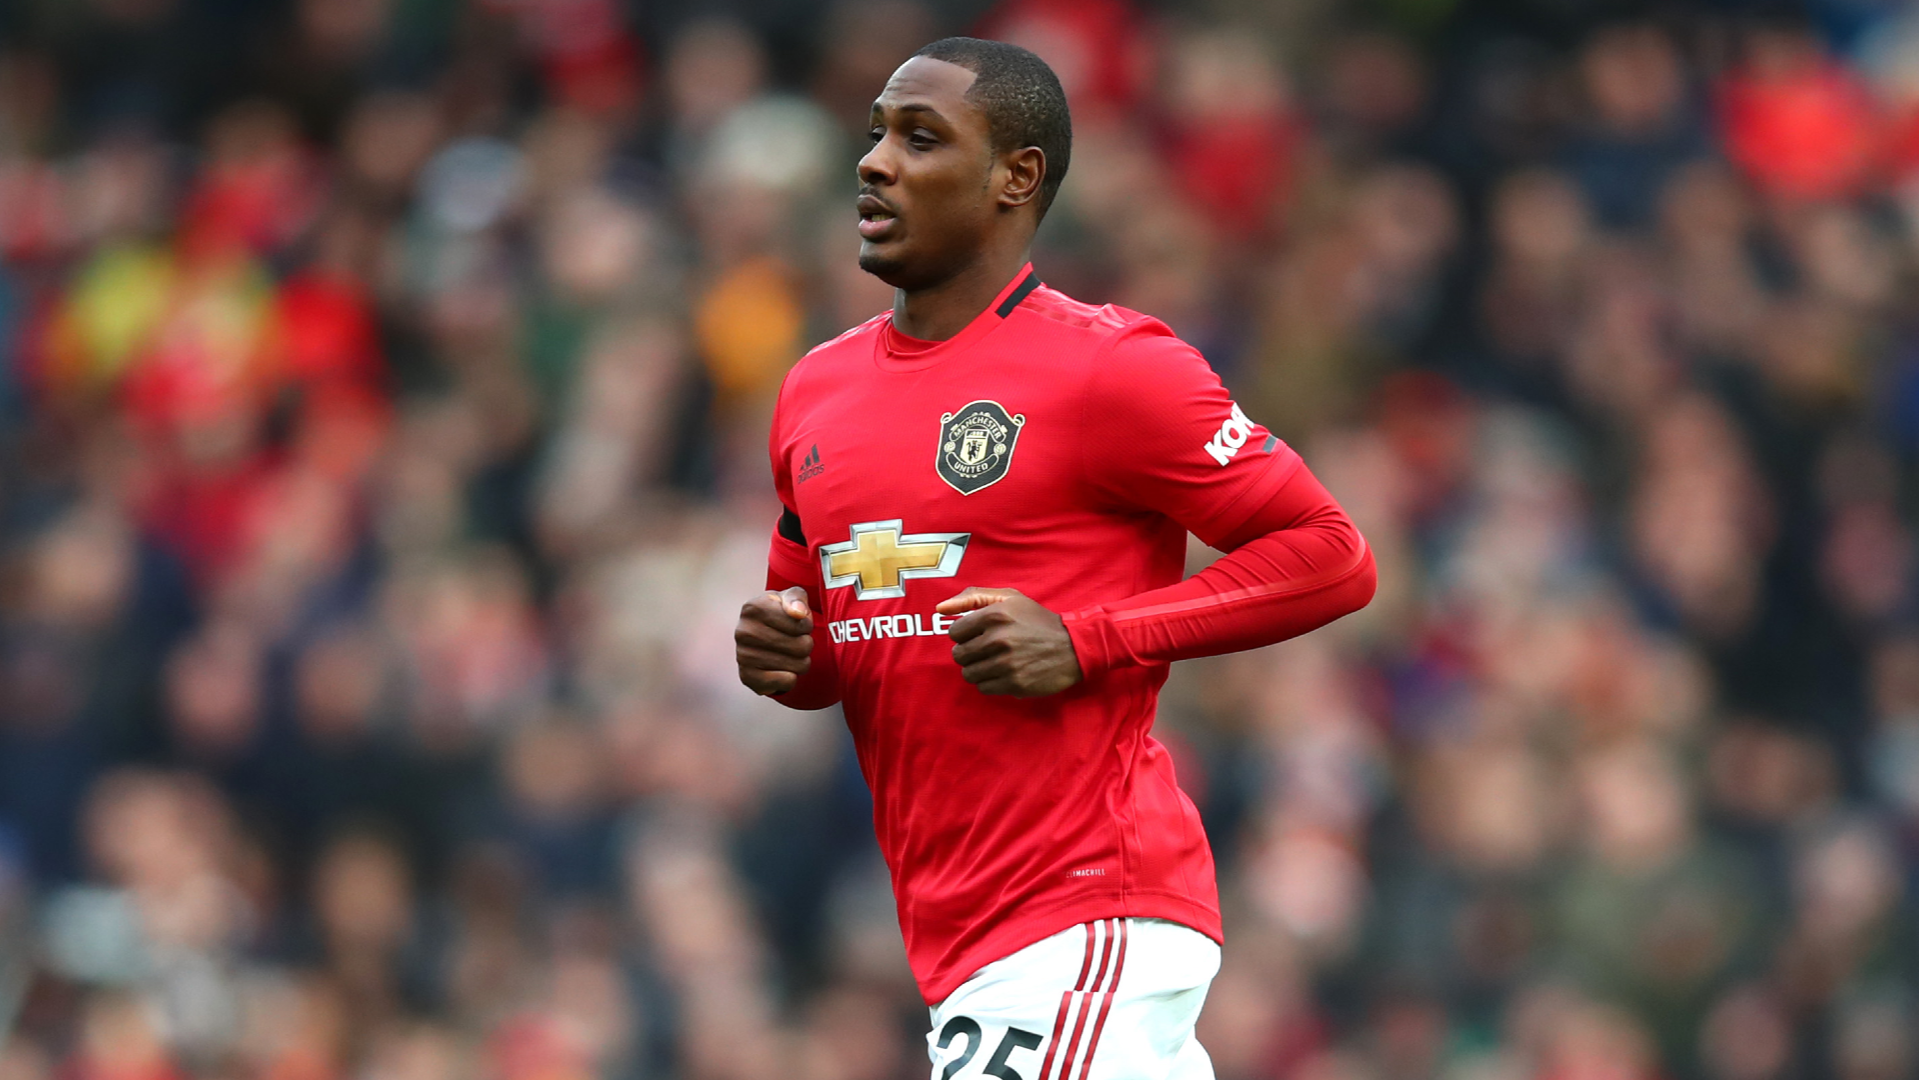 Odion Ighalo Manchester United 2020